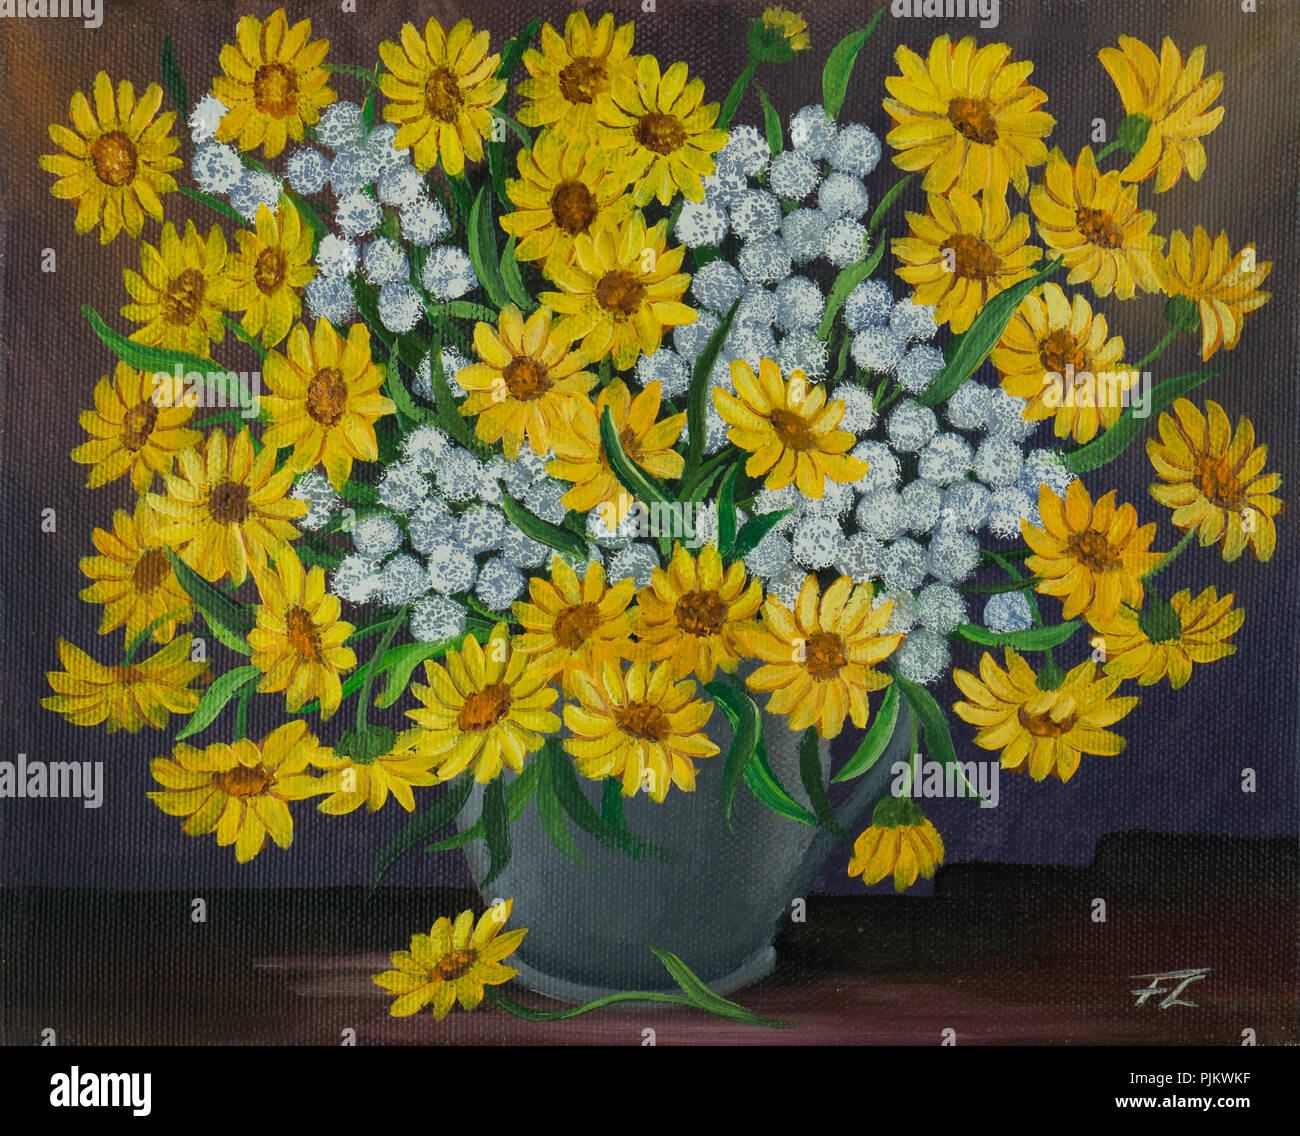 Oil Painting Of A Bouquet With Yellow And White Flowers In A Grey